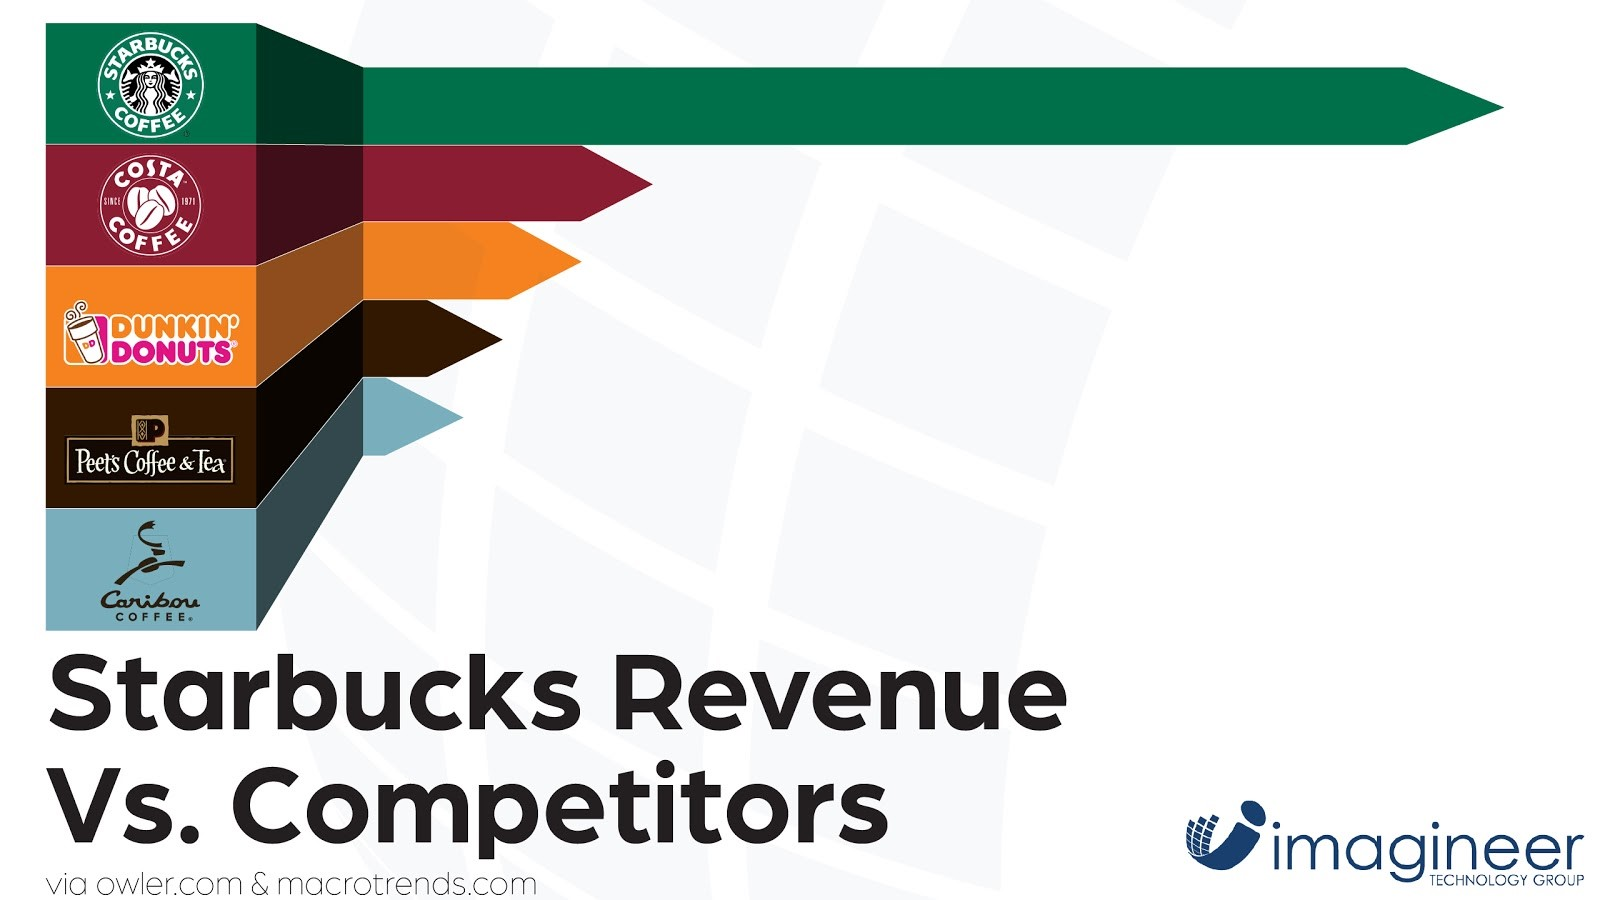 starbucks vs. competitors